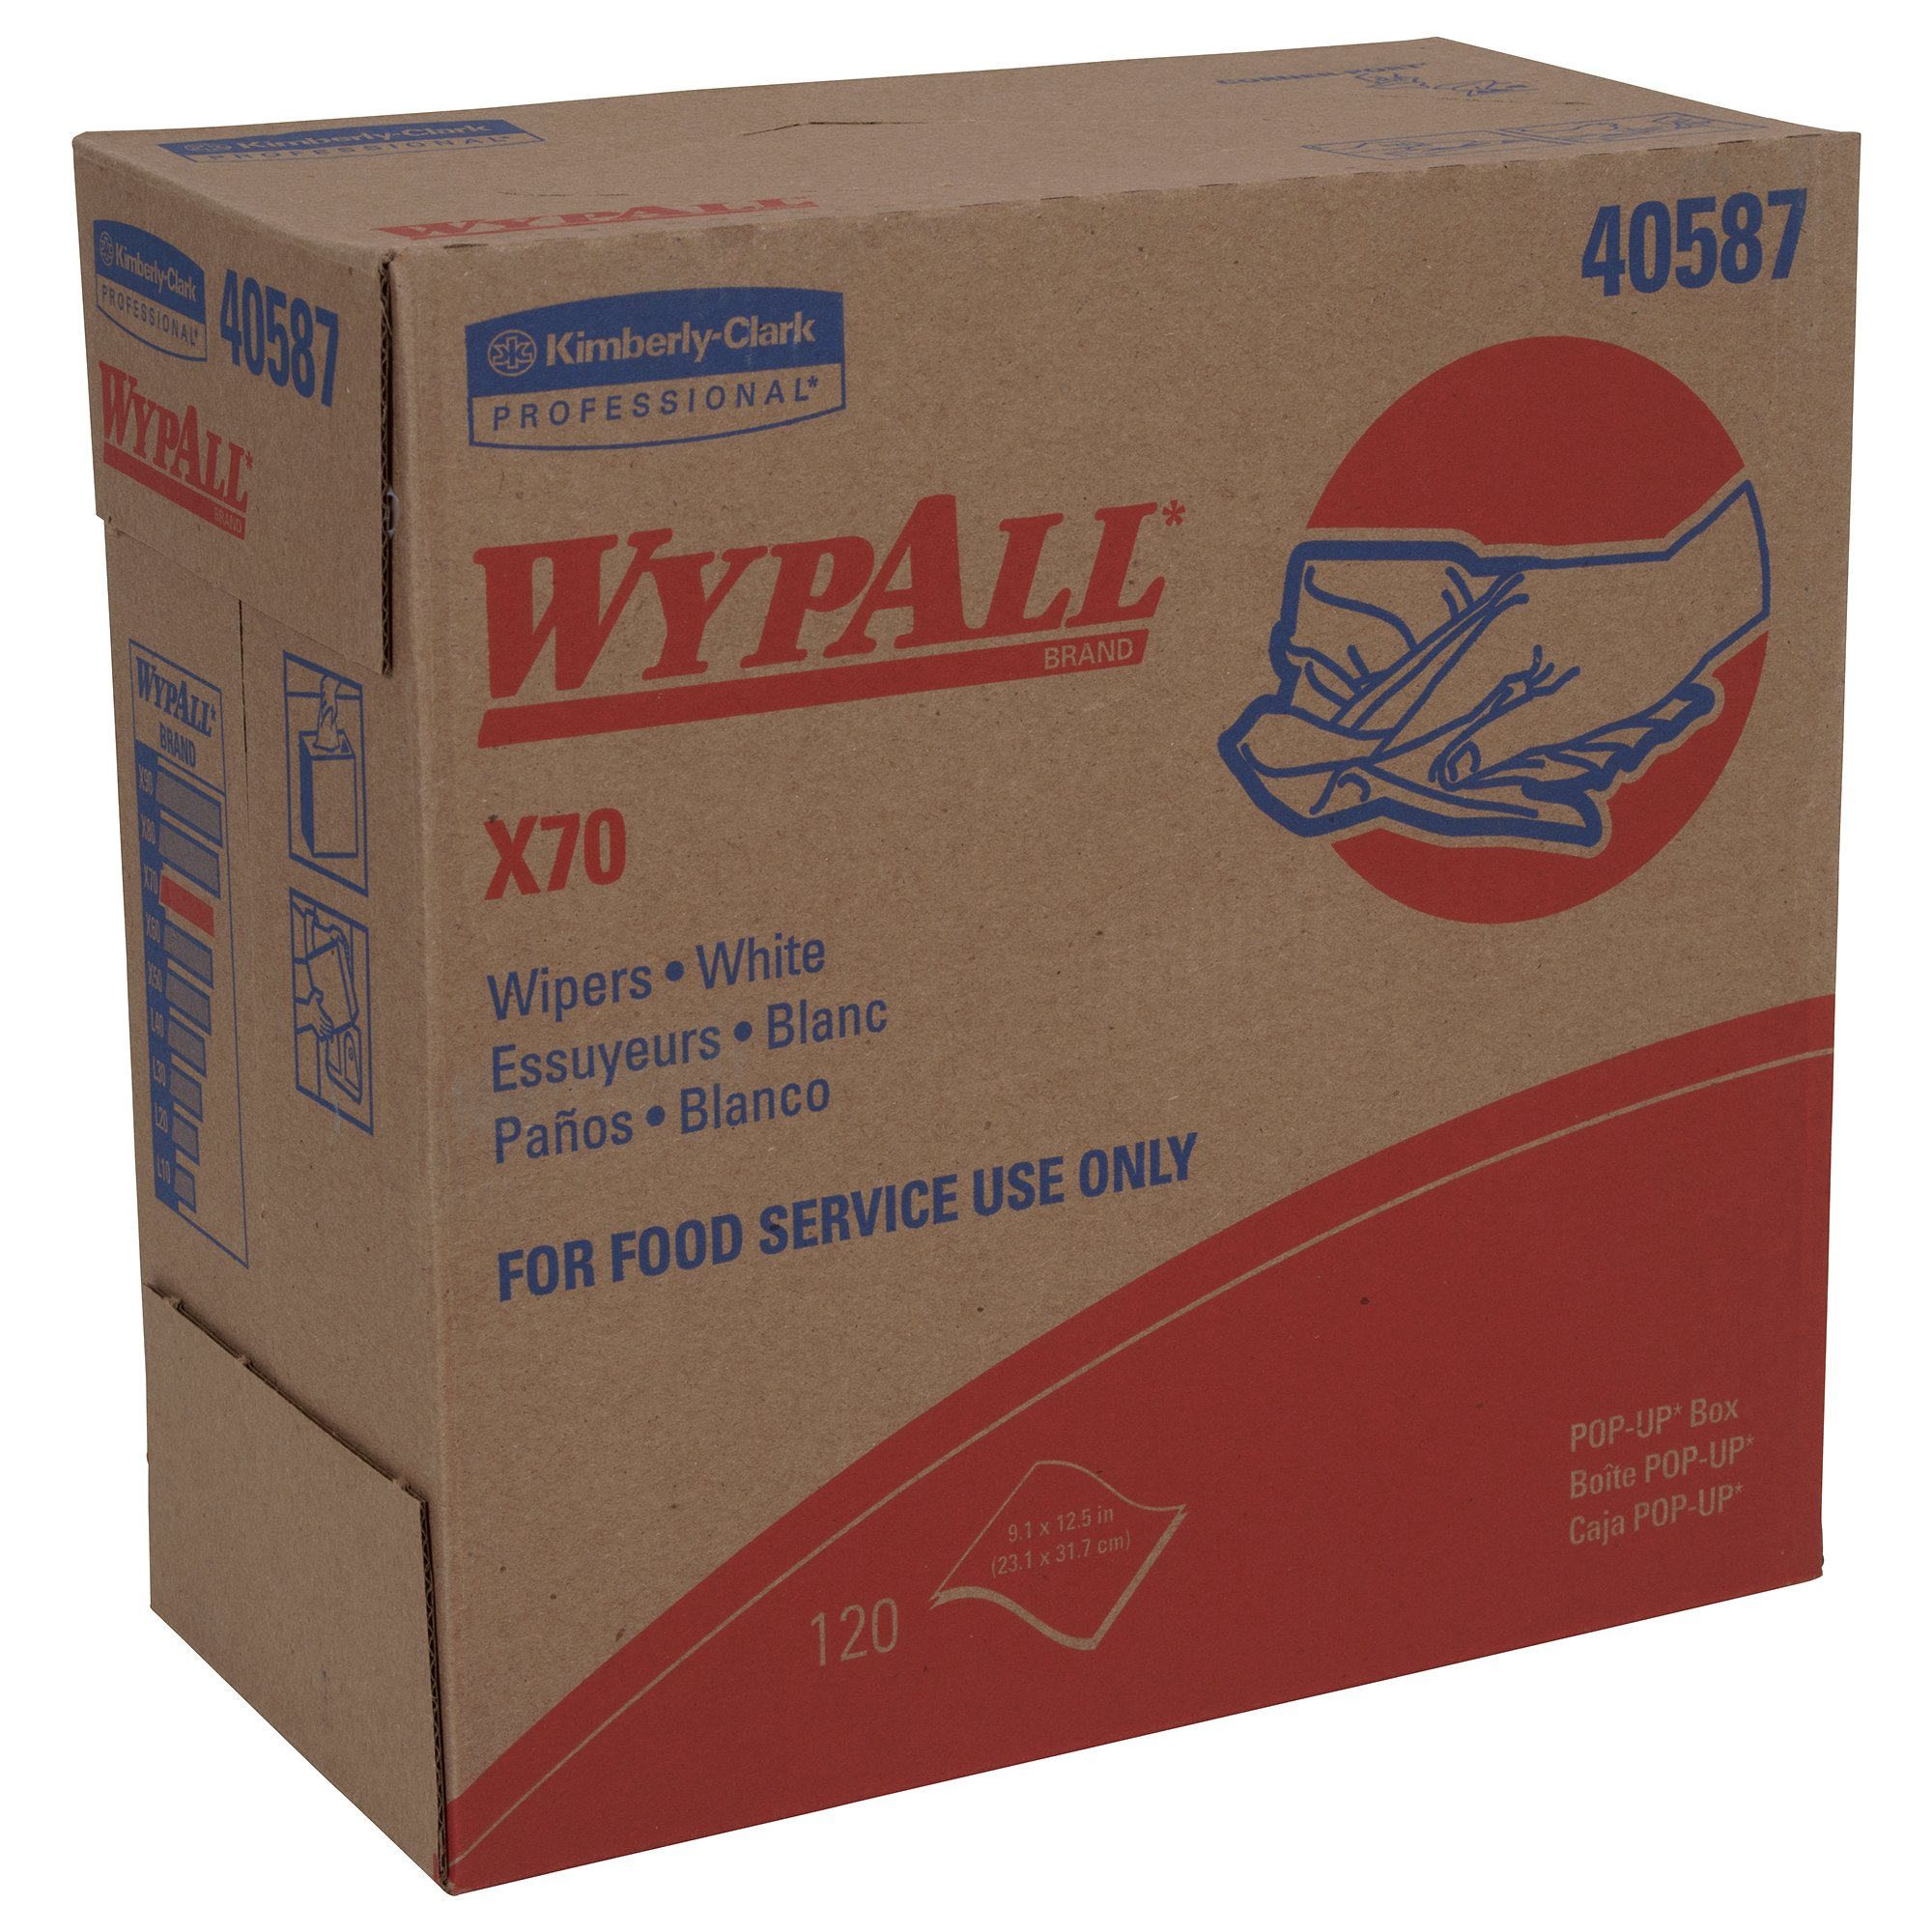 Wypall 40587 WypAll X70 Extended Use Reusable Wipers, POP-UP Box, Long Lasting Performance, White, 10 Boxes / Case, 120 Sheets / Box (Pack of 1200)